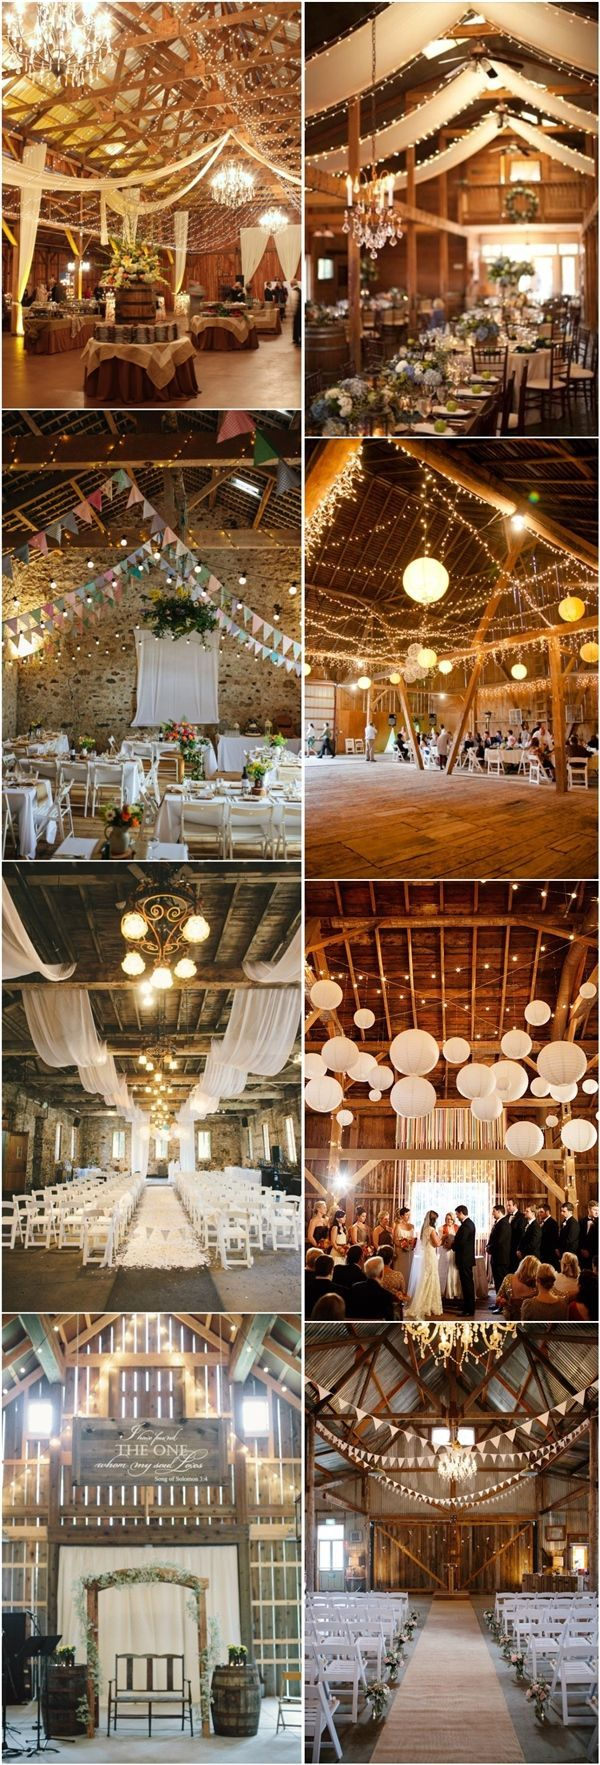 rustic barn wedding ideas- country barn wedding decor ideas - Deer Pearl Flowers